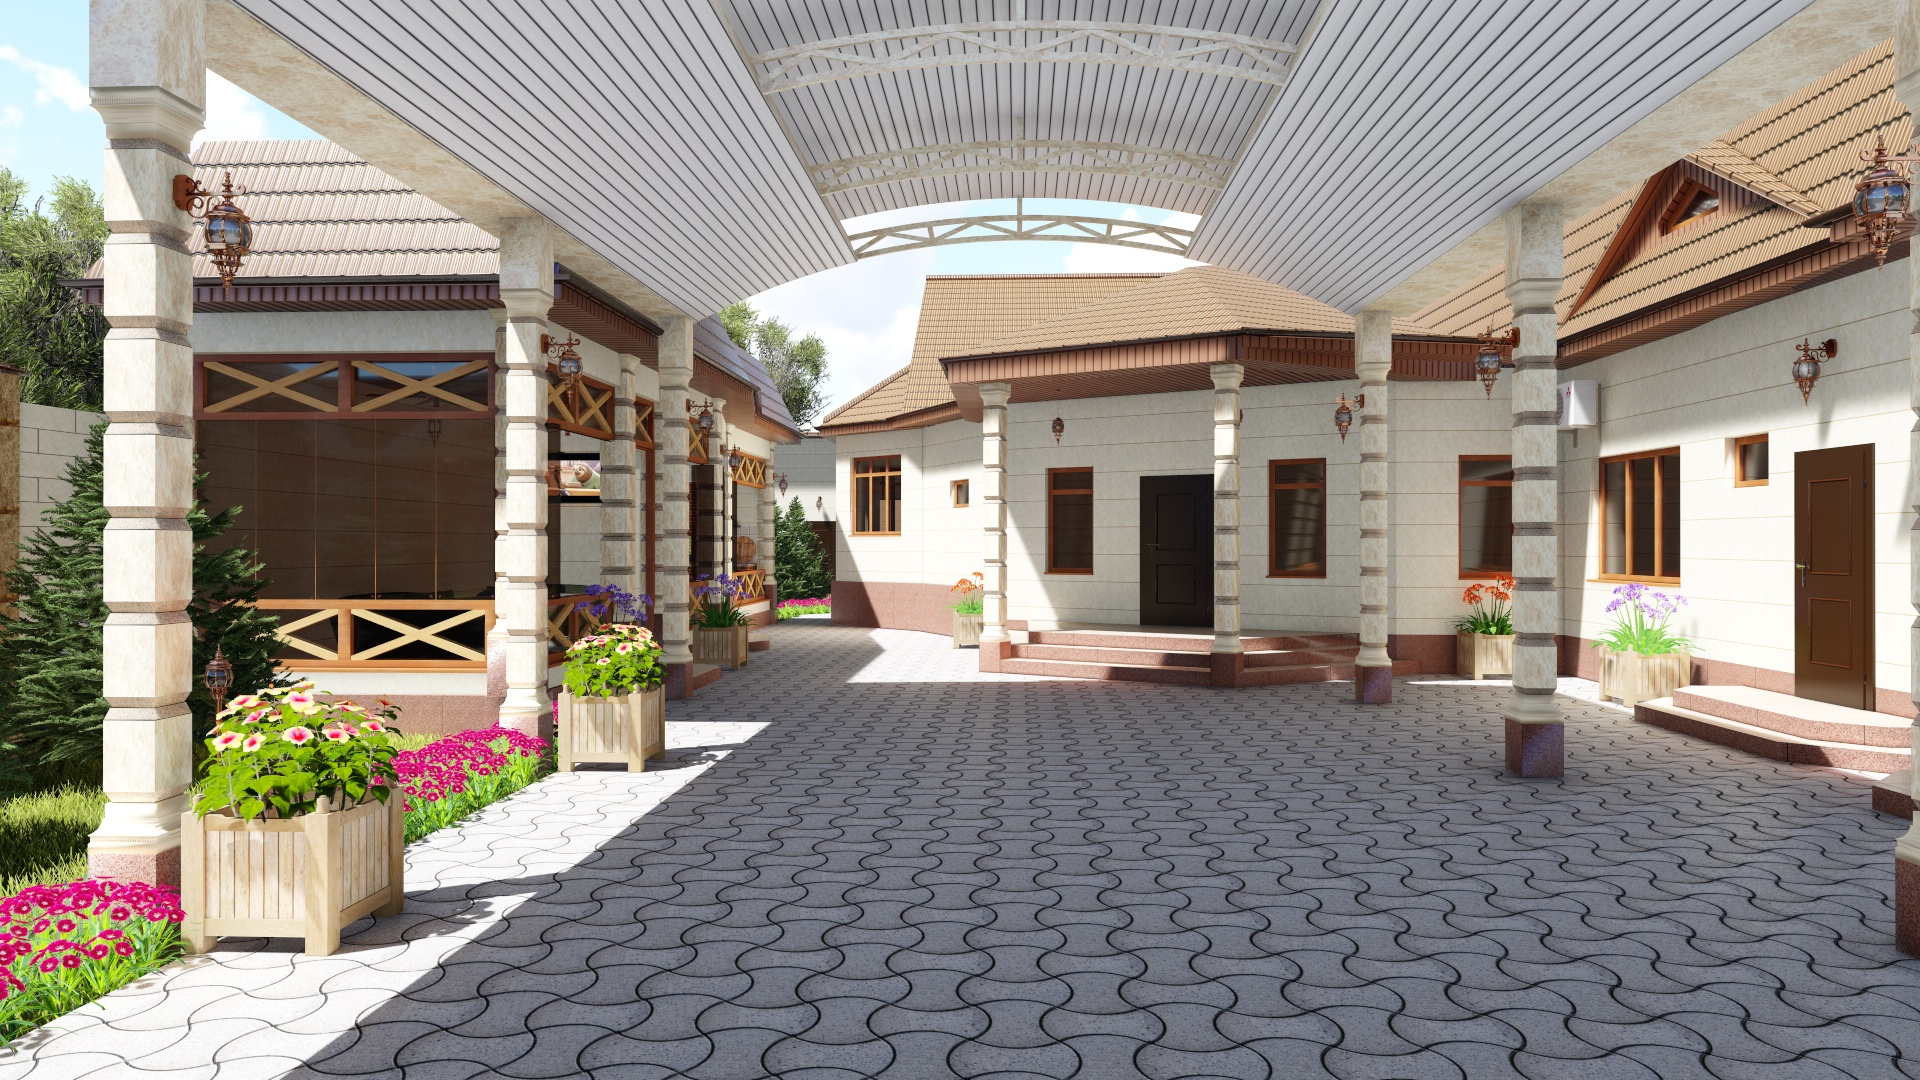 3D Design development of a home, summer terrace and carport. (Video attached) in Cinema 4d Other image